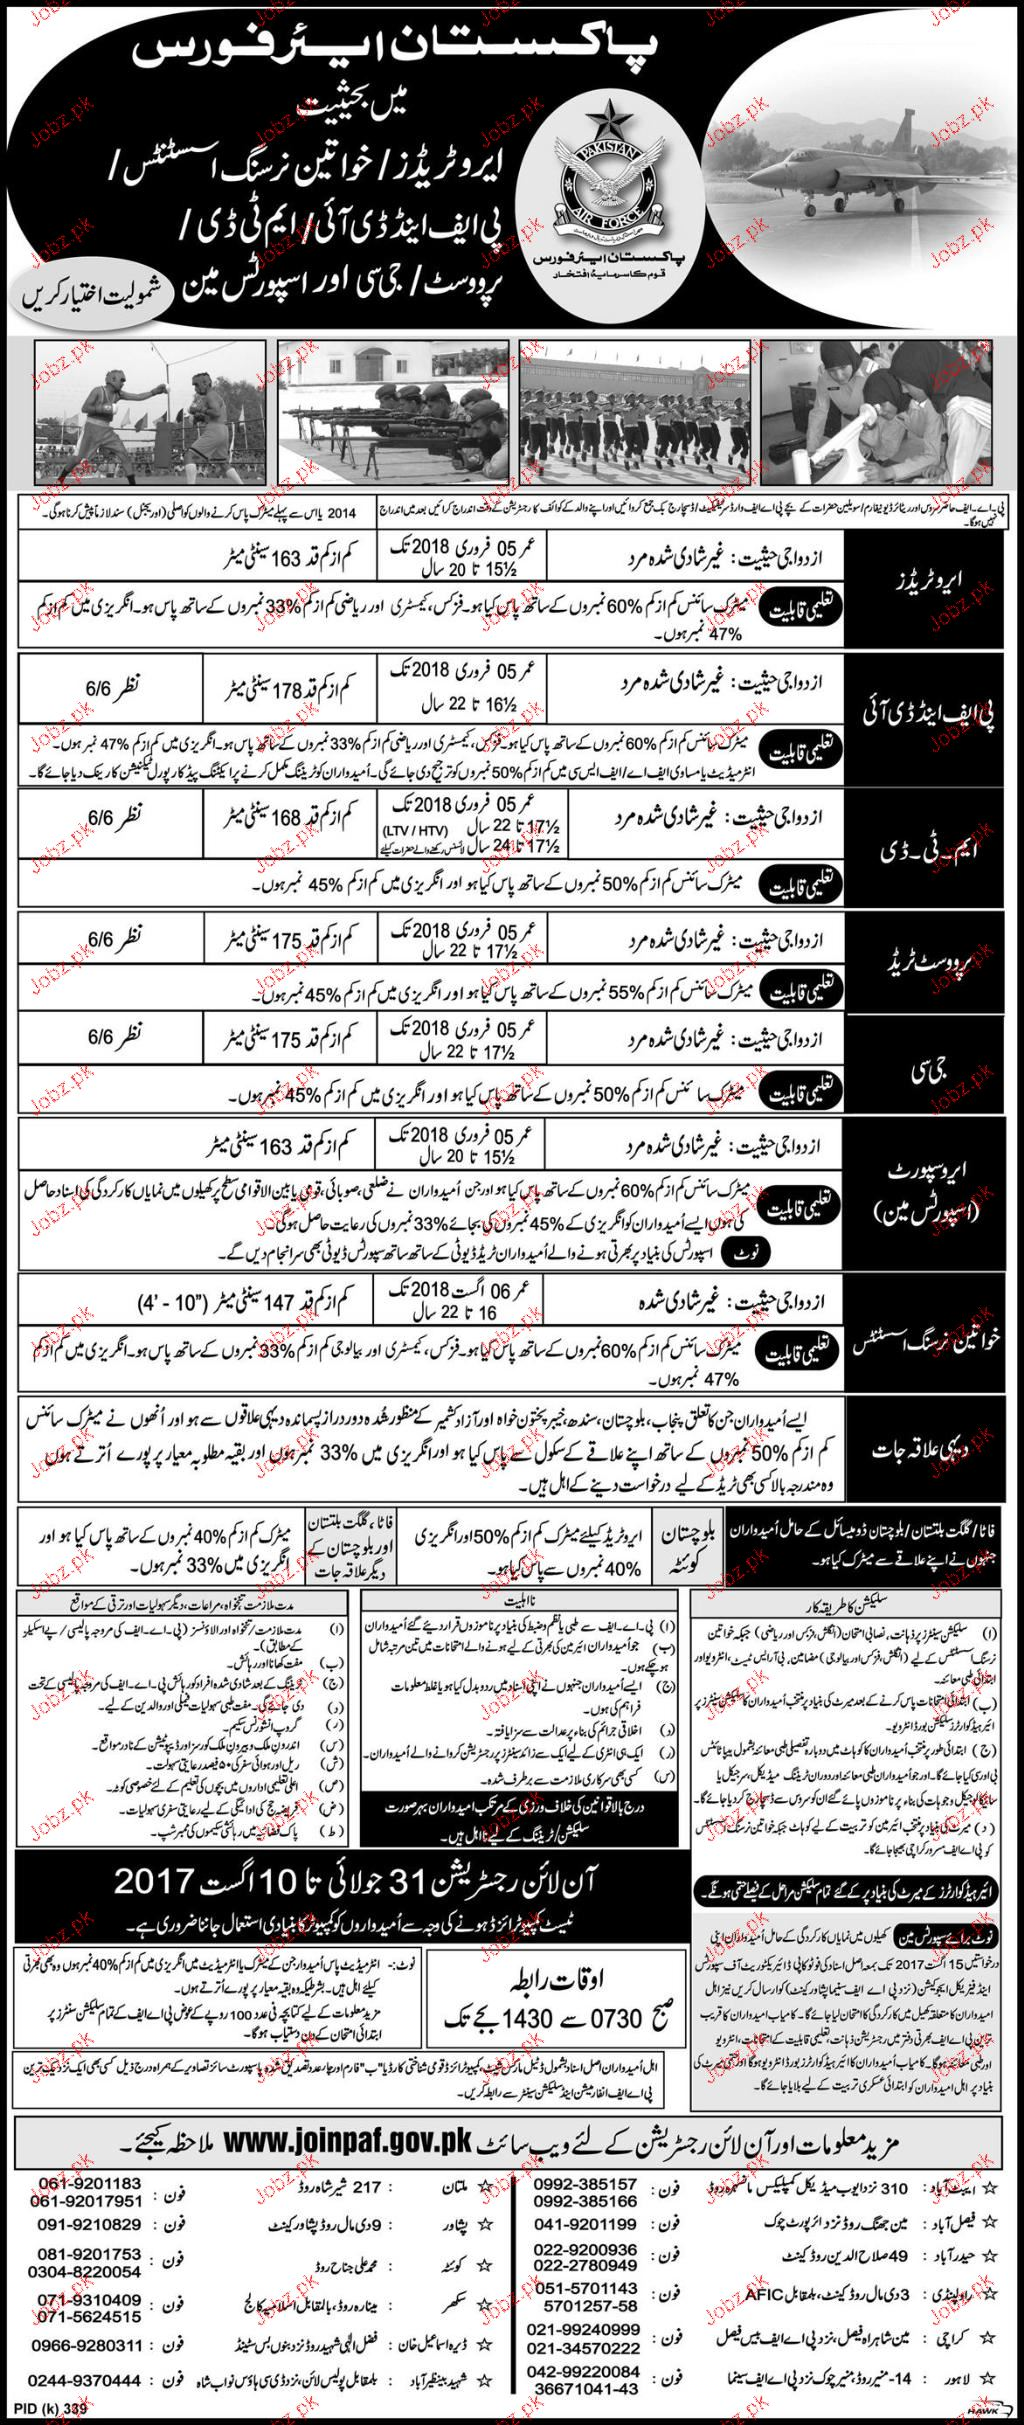 Pakistan Air Force Recruitment